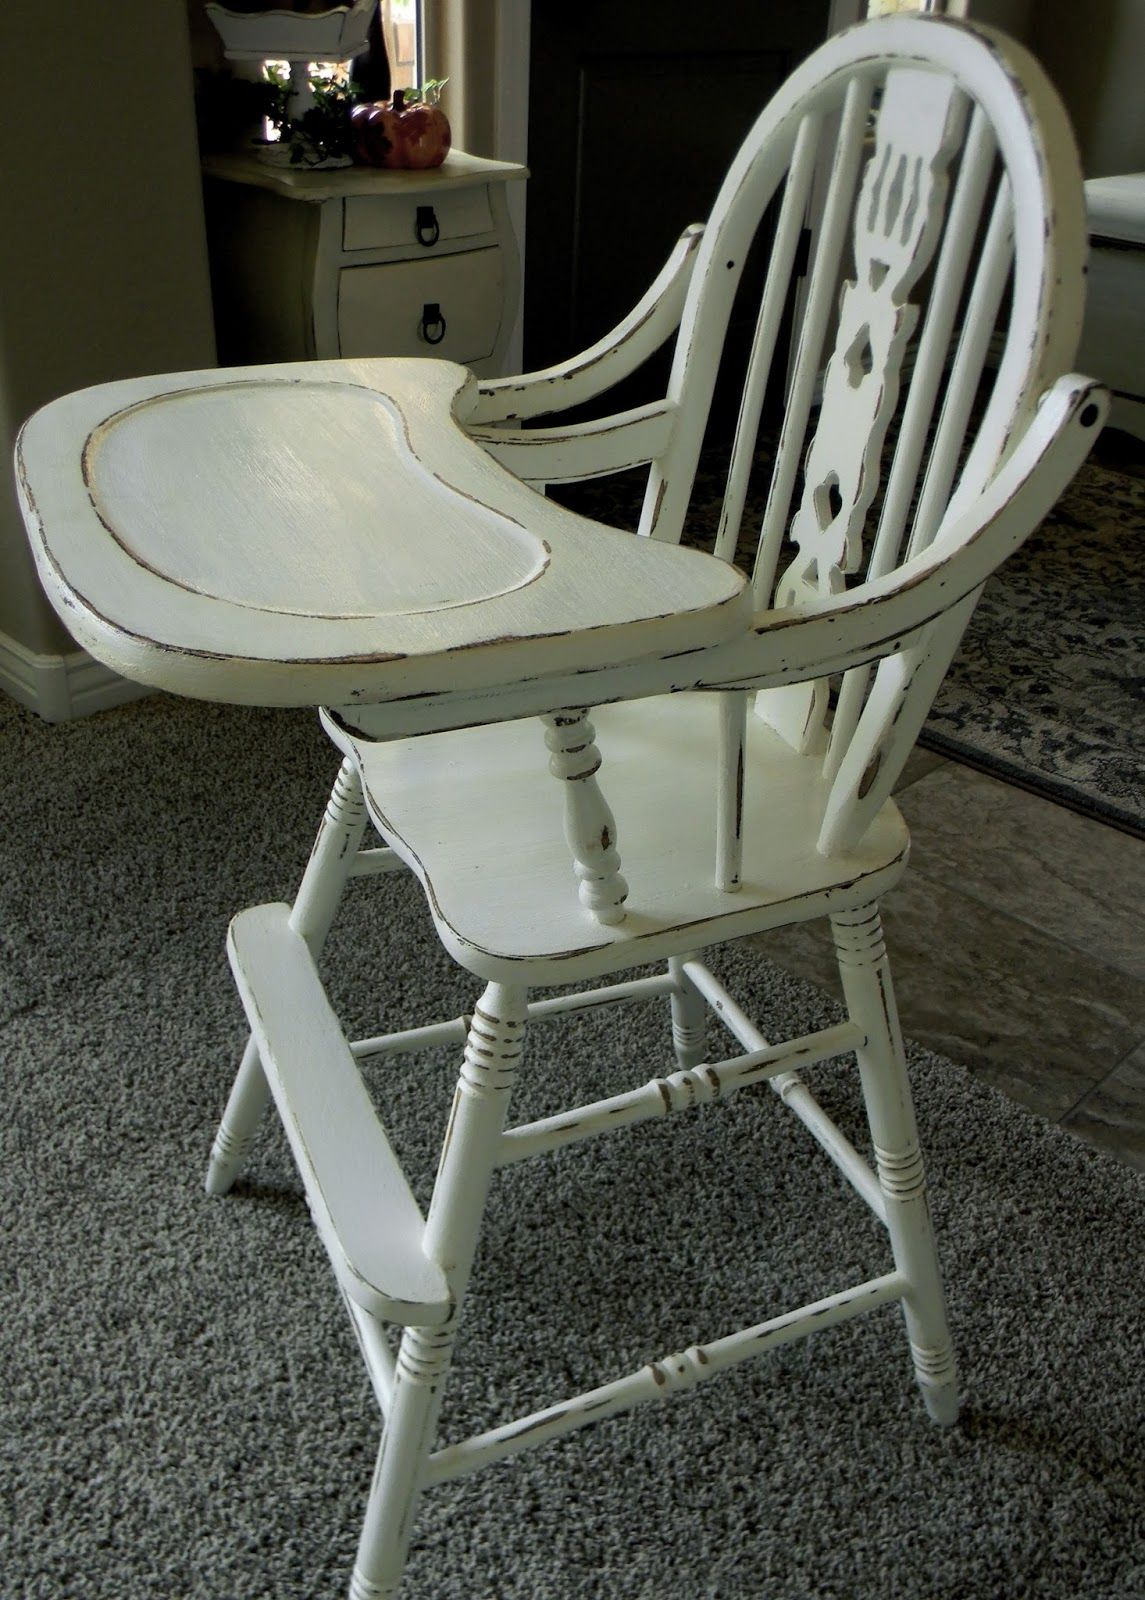 Refinished Antique High Chair - Refinished Antique High Chair DIY Pinterest Antique High